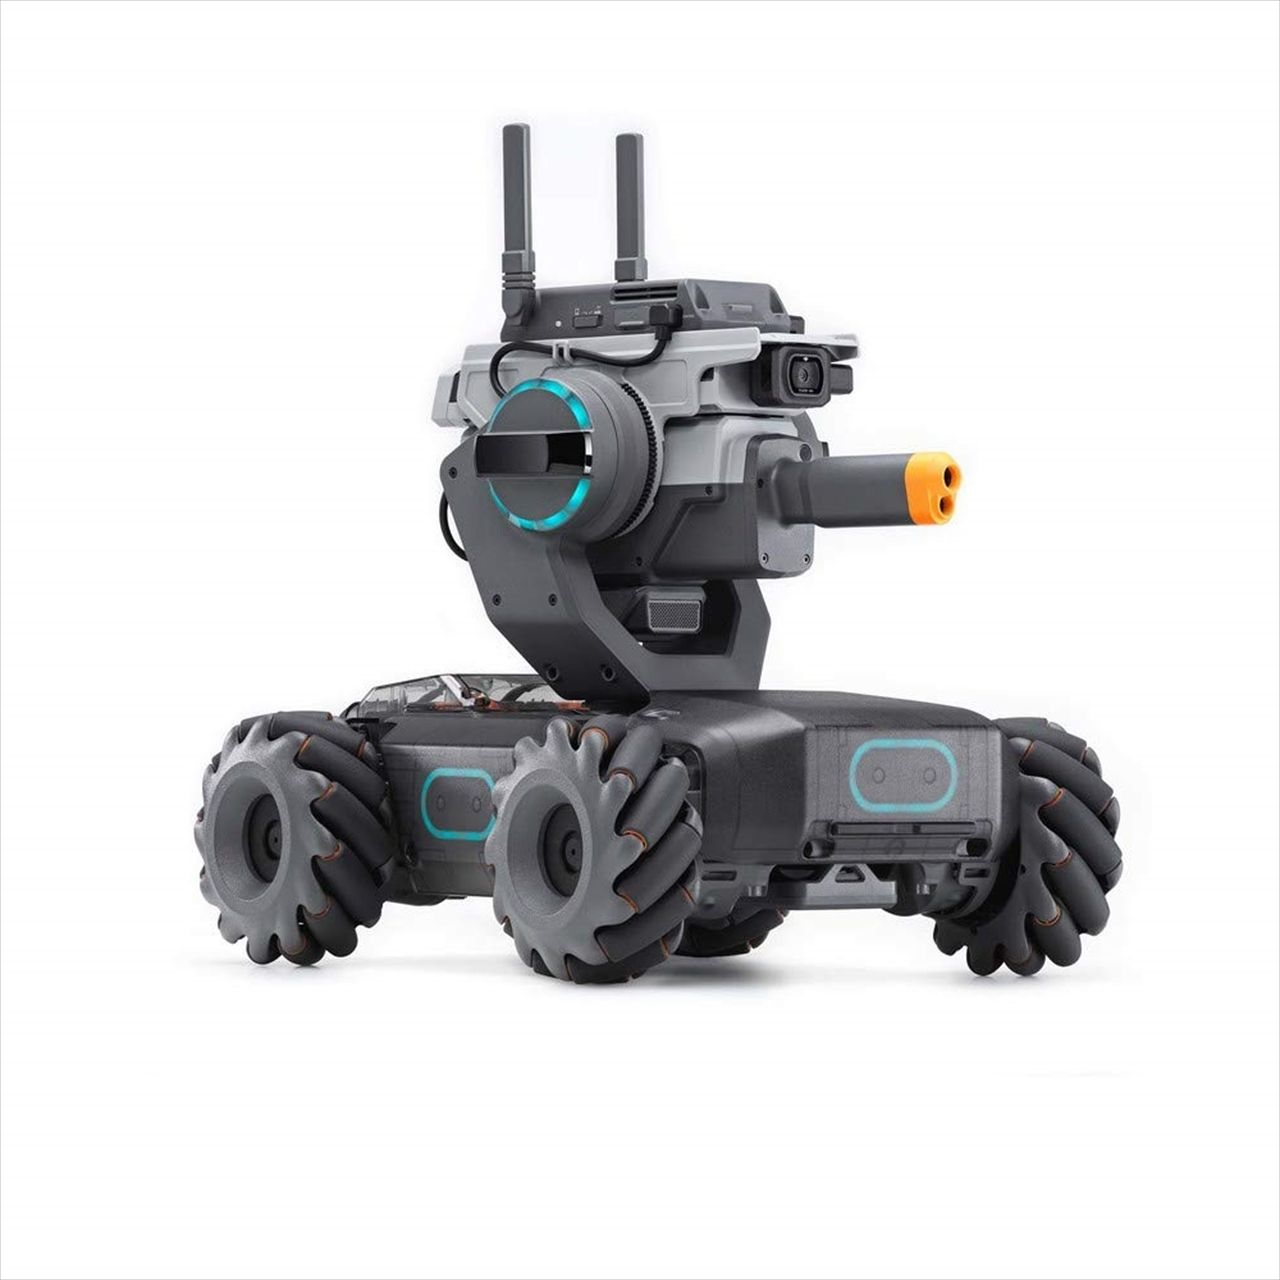 DJI Robomaster S1 Intelligent Educational Robot 4WD Brushless HD FPV APP Control Robot for Sale  US$824 39 grey is part of Educational robots, App control, Robotics competition, Robots for sale, Arduino, Robot - Only US$824 39 at fast free shipping  Shop best grey DJI Robomaster S1 Intelligent Educational Robot 4WD Brushless HD FPV APP Control Robot for sale, There are various discounts waiting for you   Tomtop com